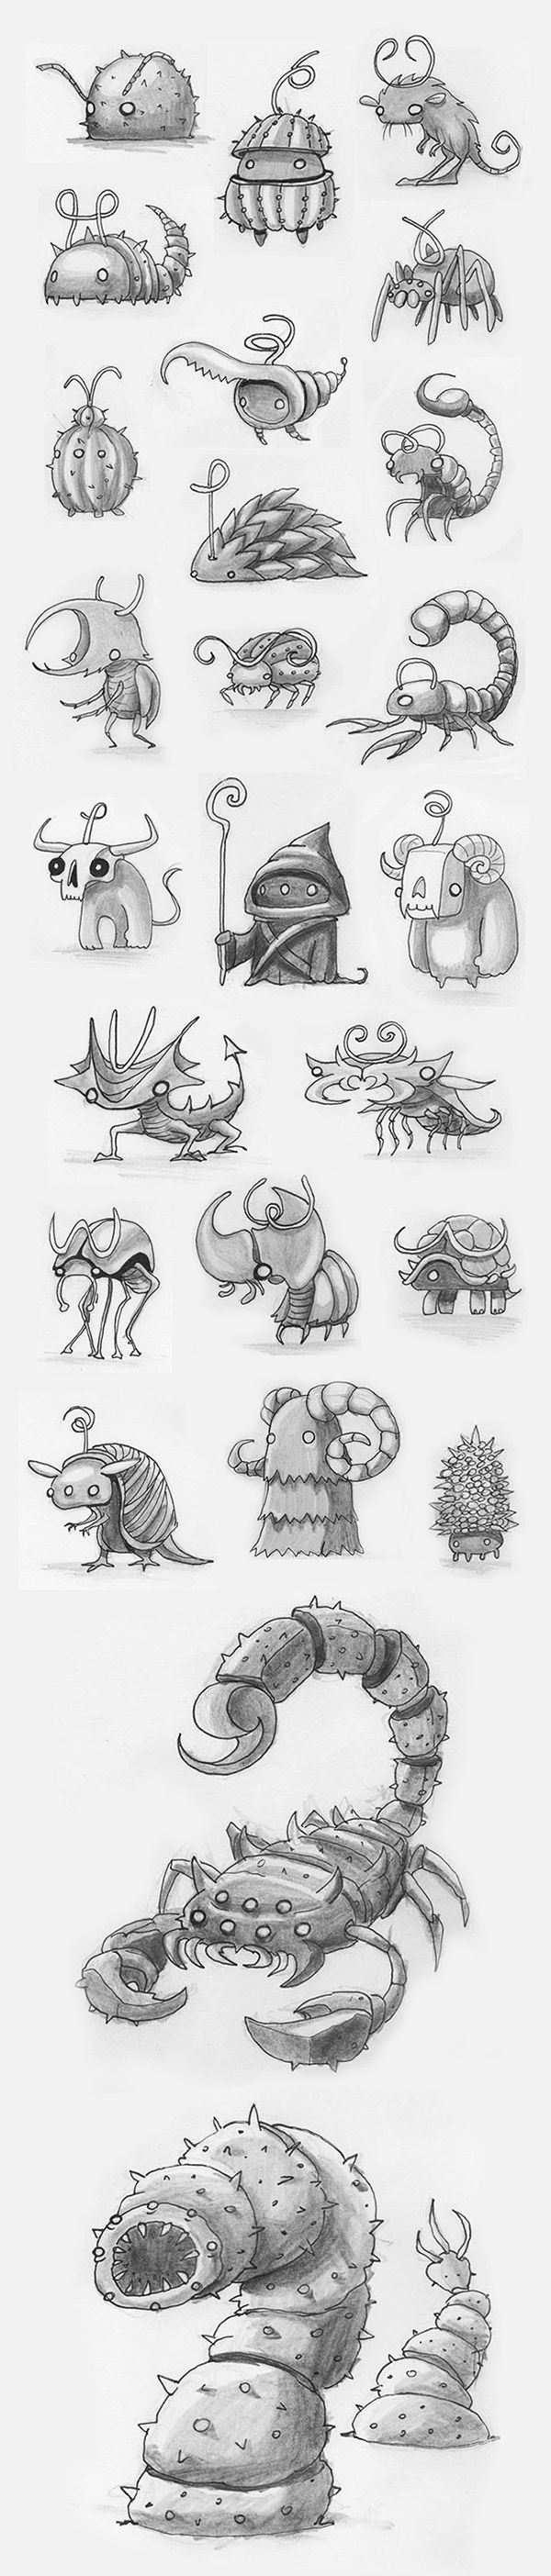 New Characters & Backgrounds for Darklings Season 2!Free Download on the AppStore for iPad and iPhone: appsto.re/i6B59nQ